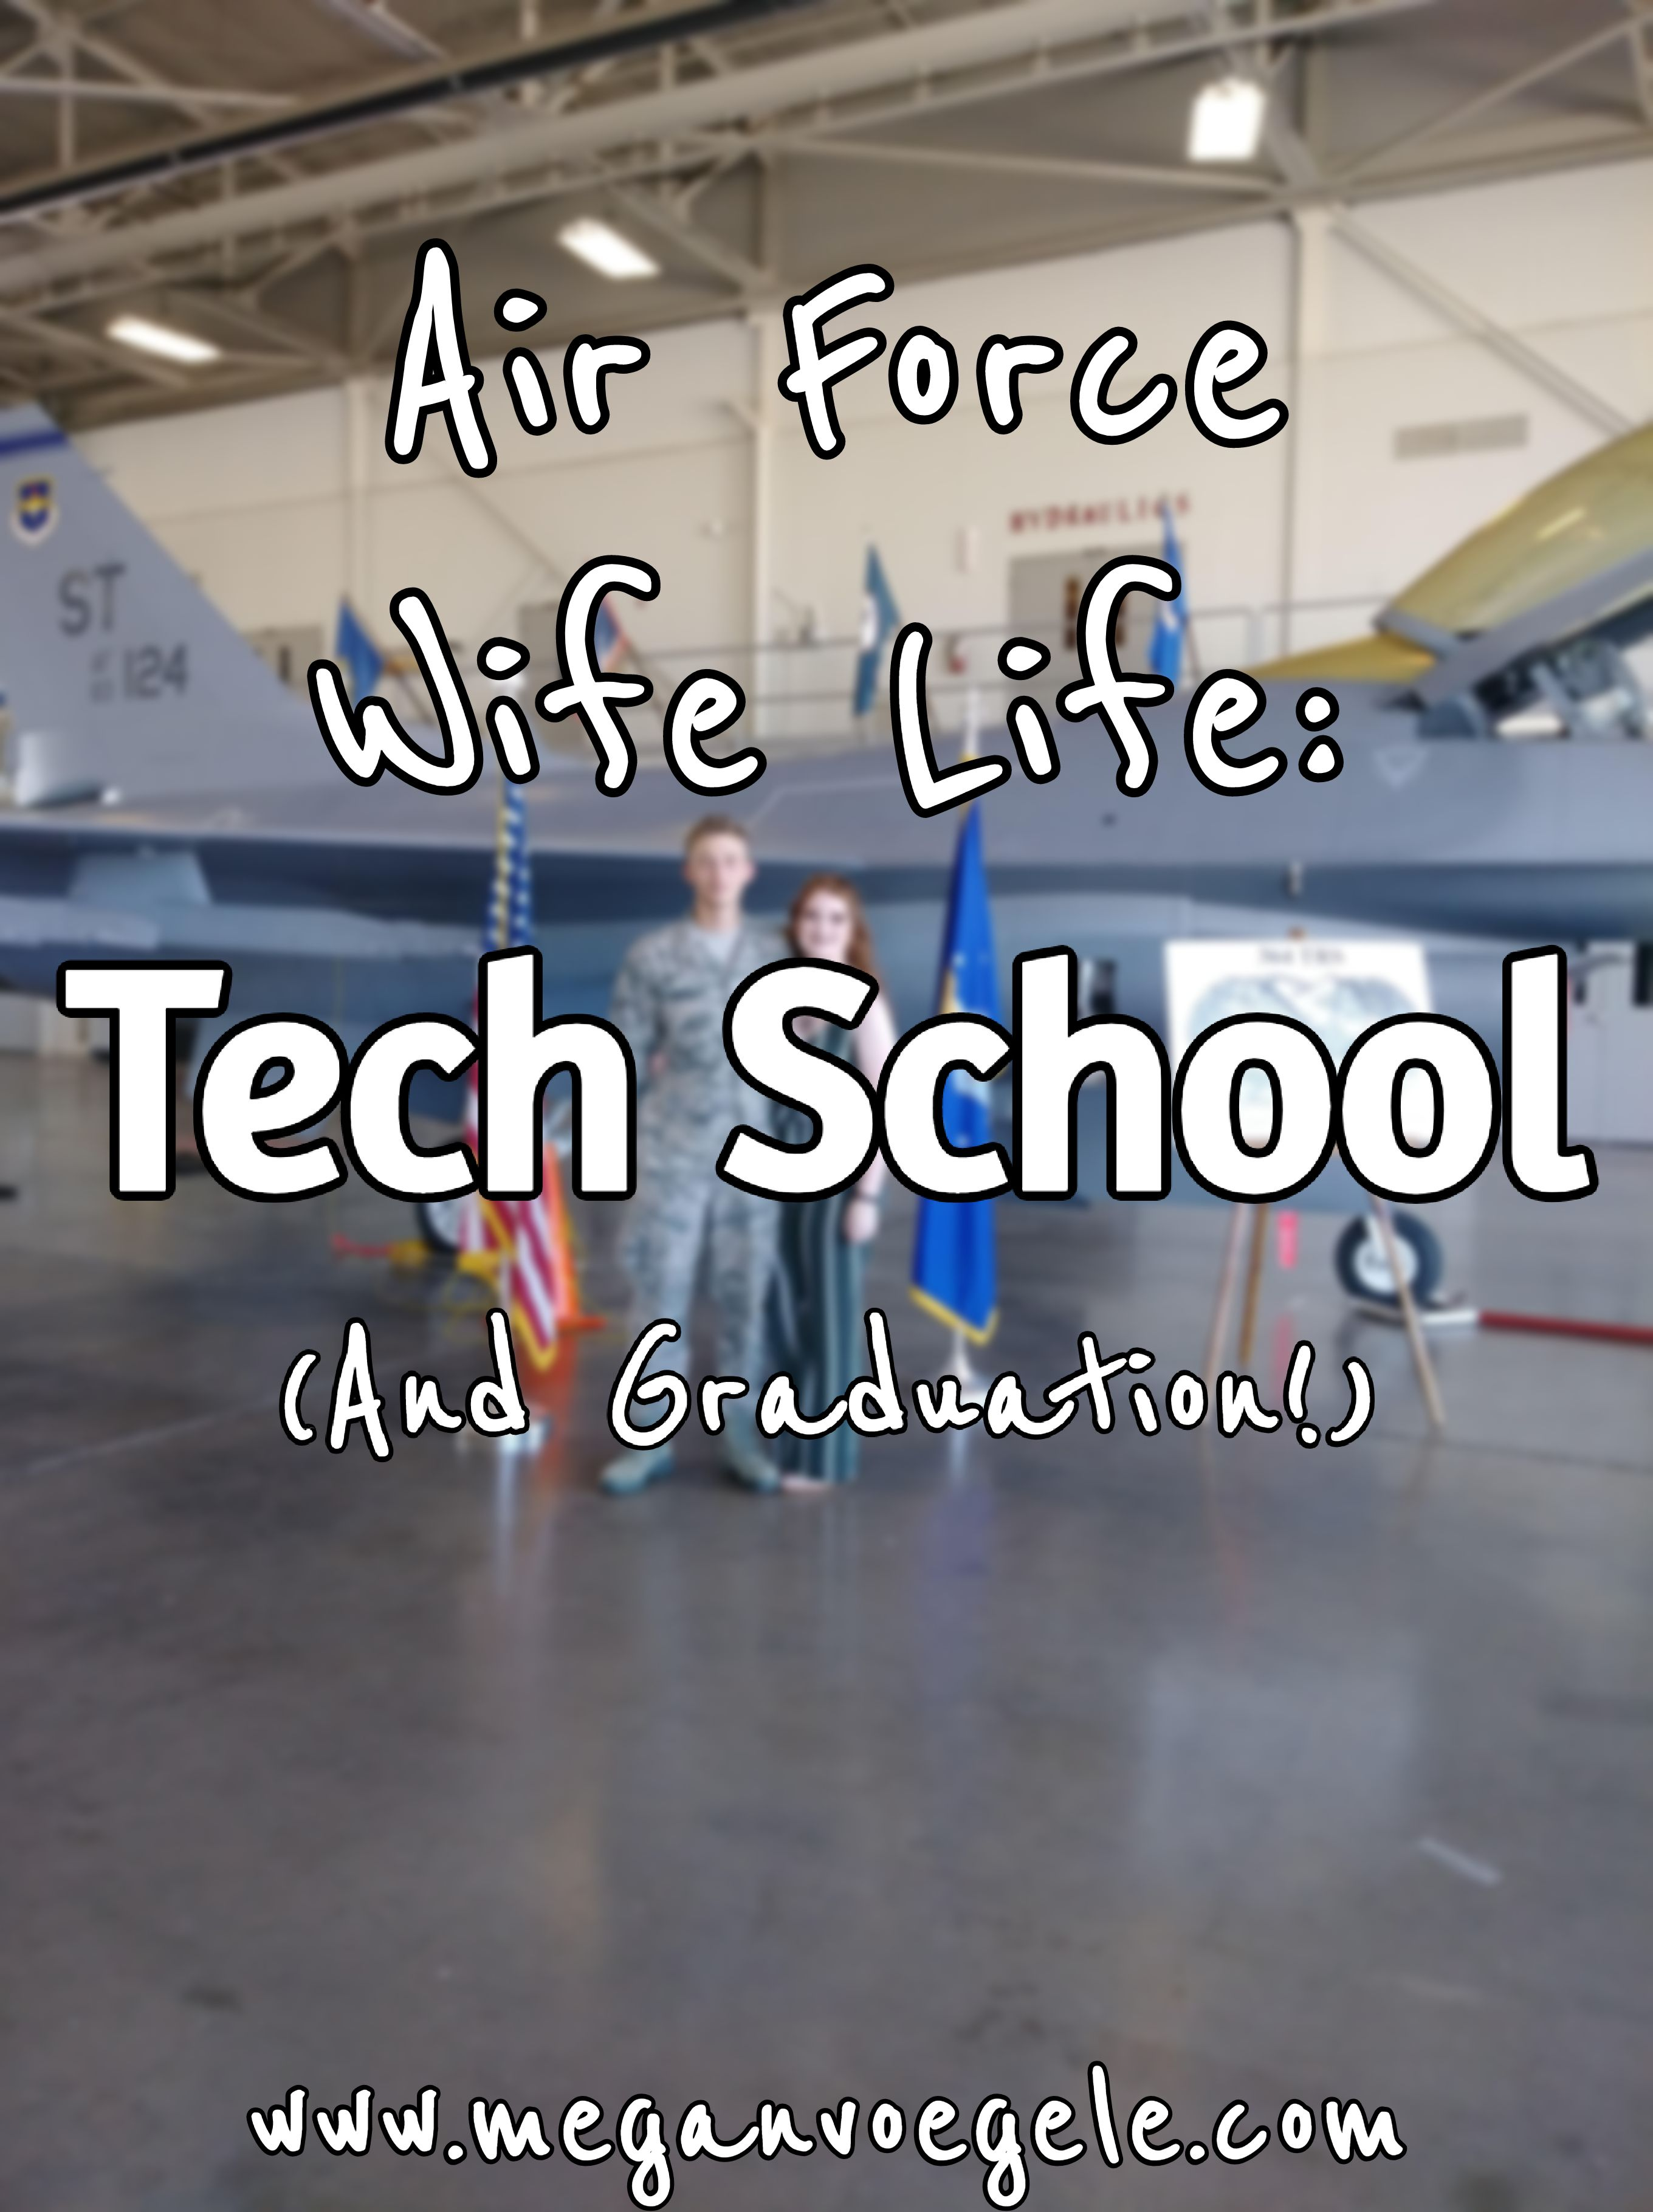 Air Force Wife Life Tech School (and Graduation